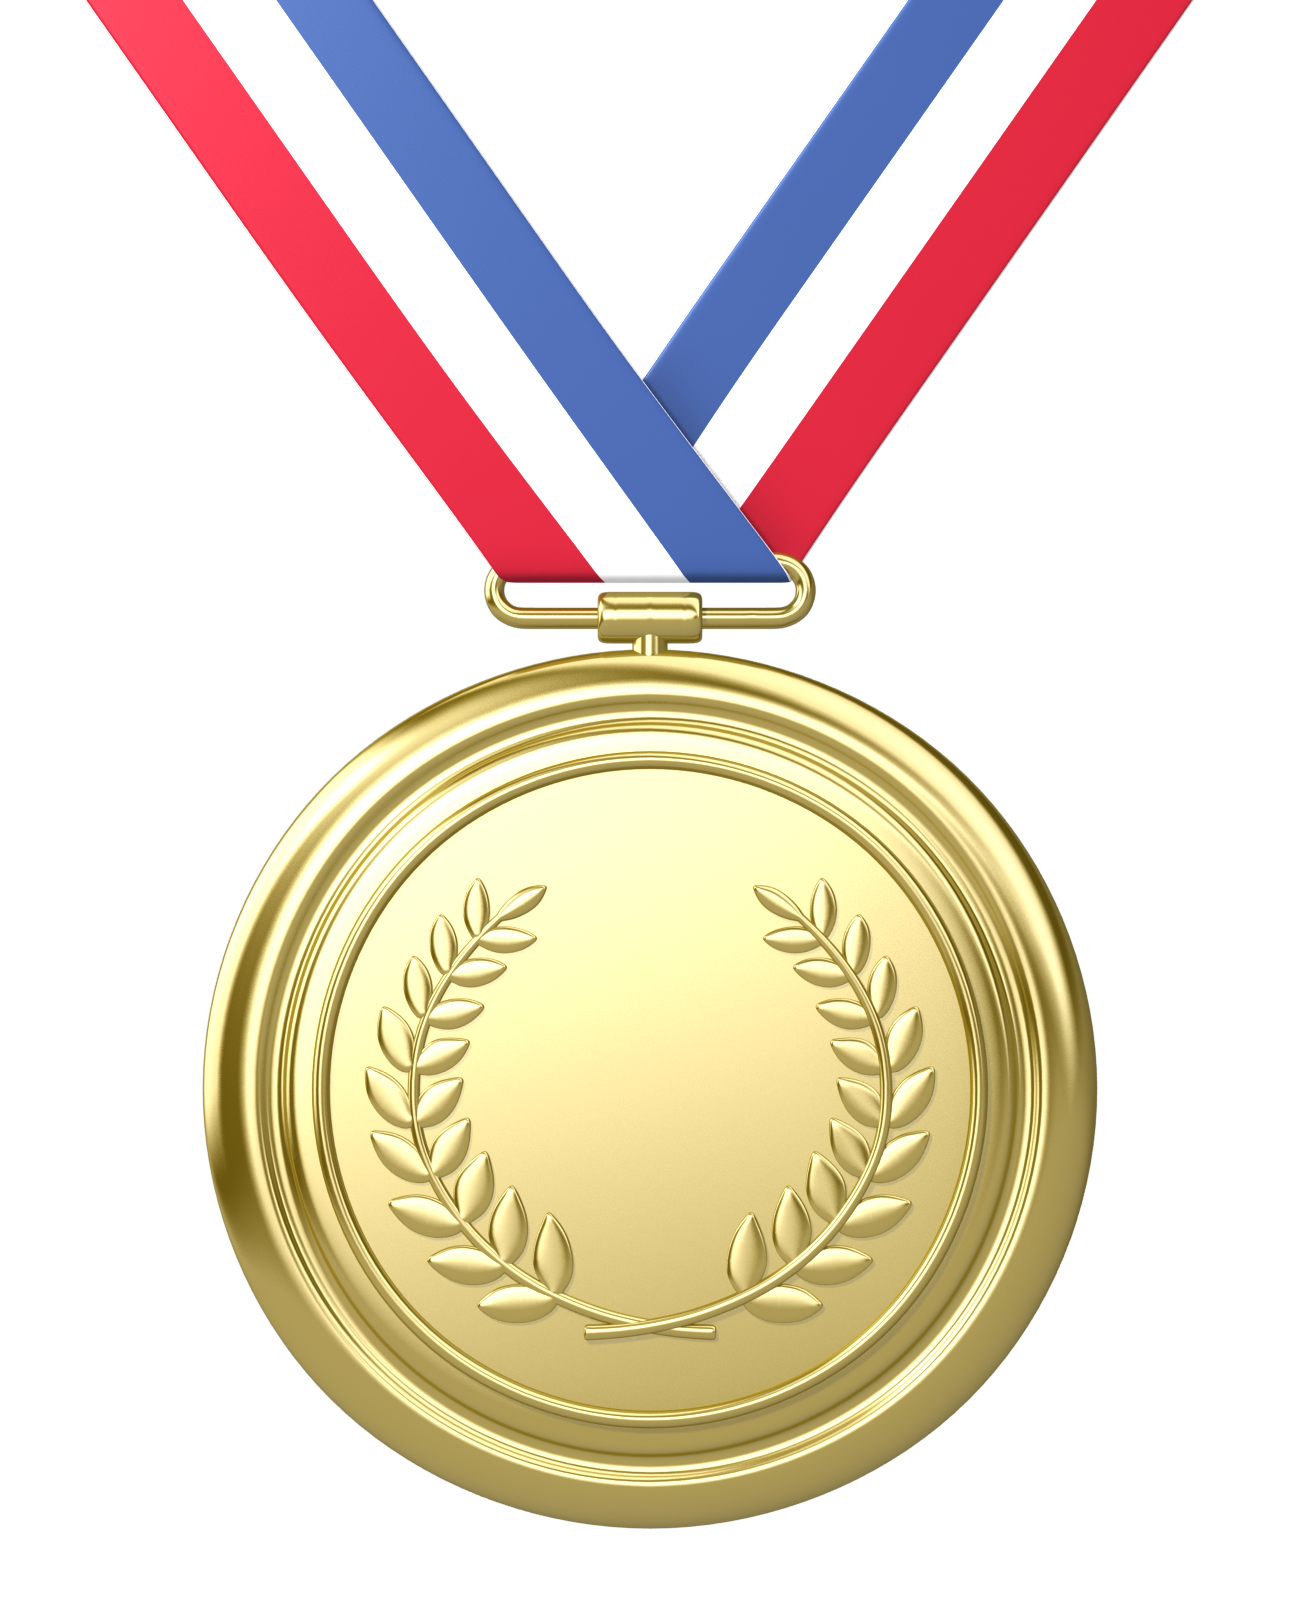 medium resolution of 7 personal gold medal achievements olympic medals volunteer management gold cup ribbon design